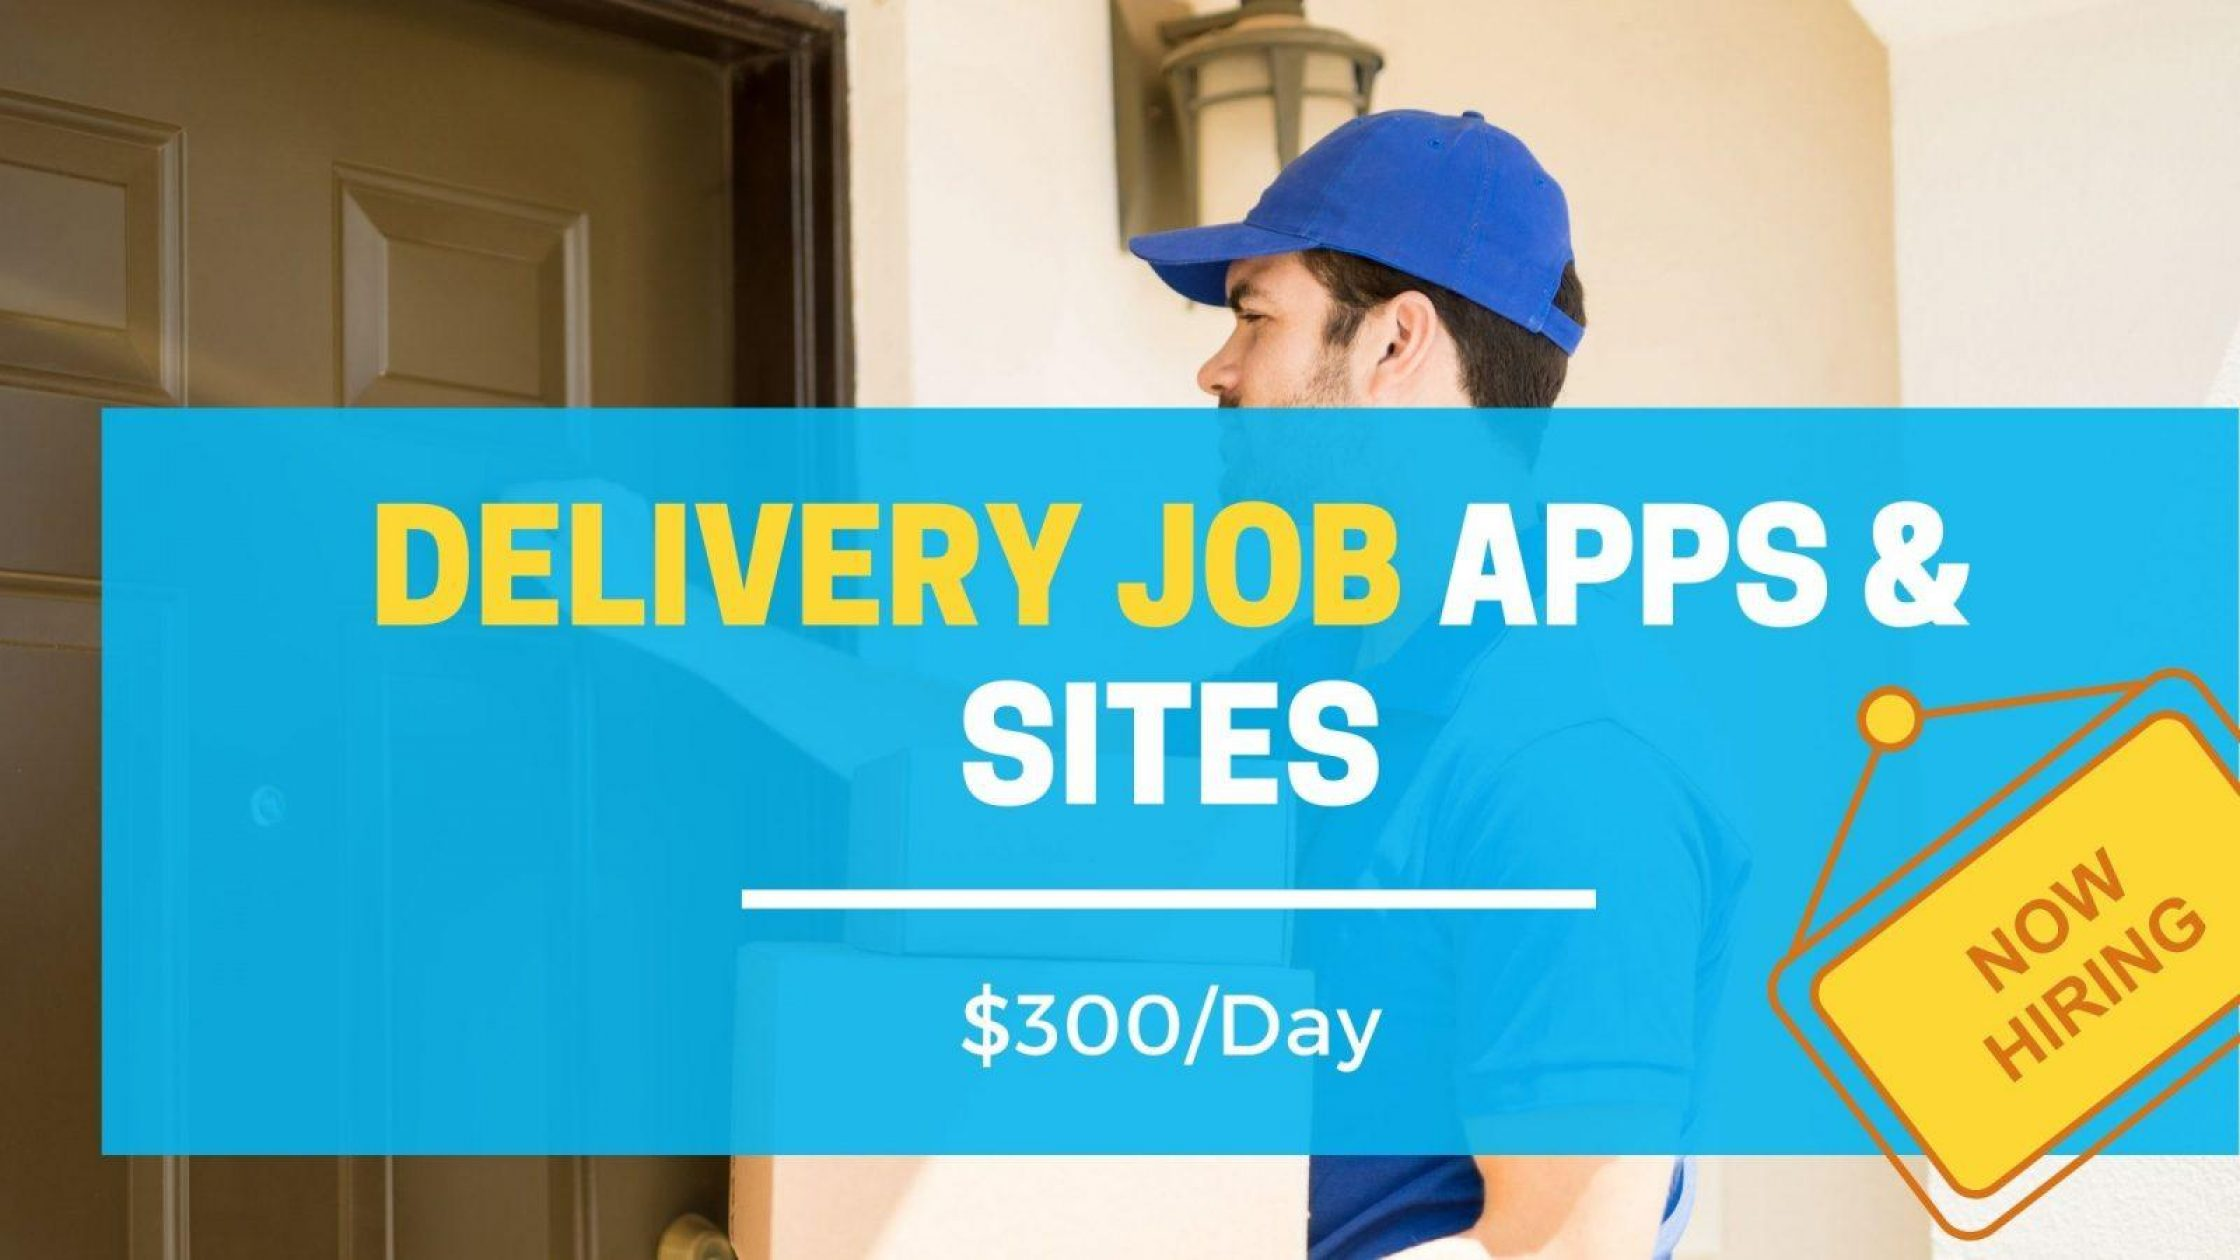 27 Delivery Job Apps & Sites|$300/Day HIRING NOW